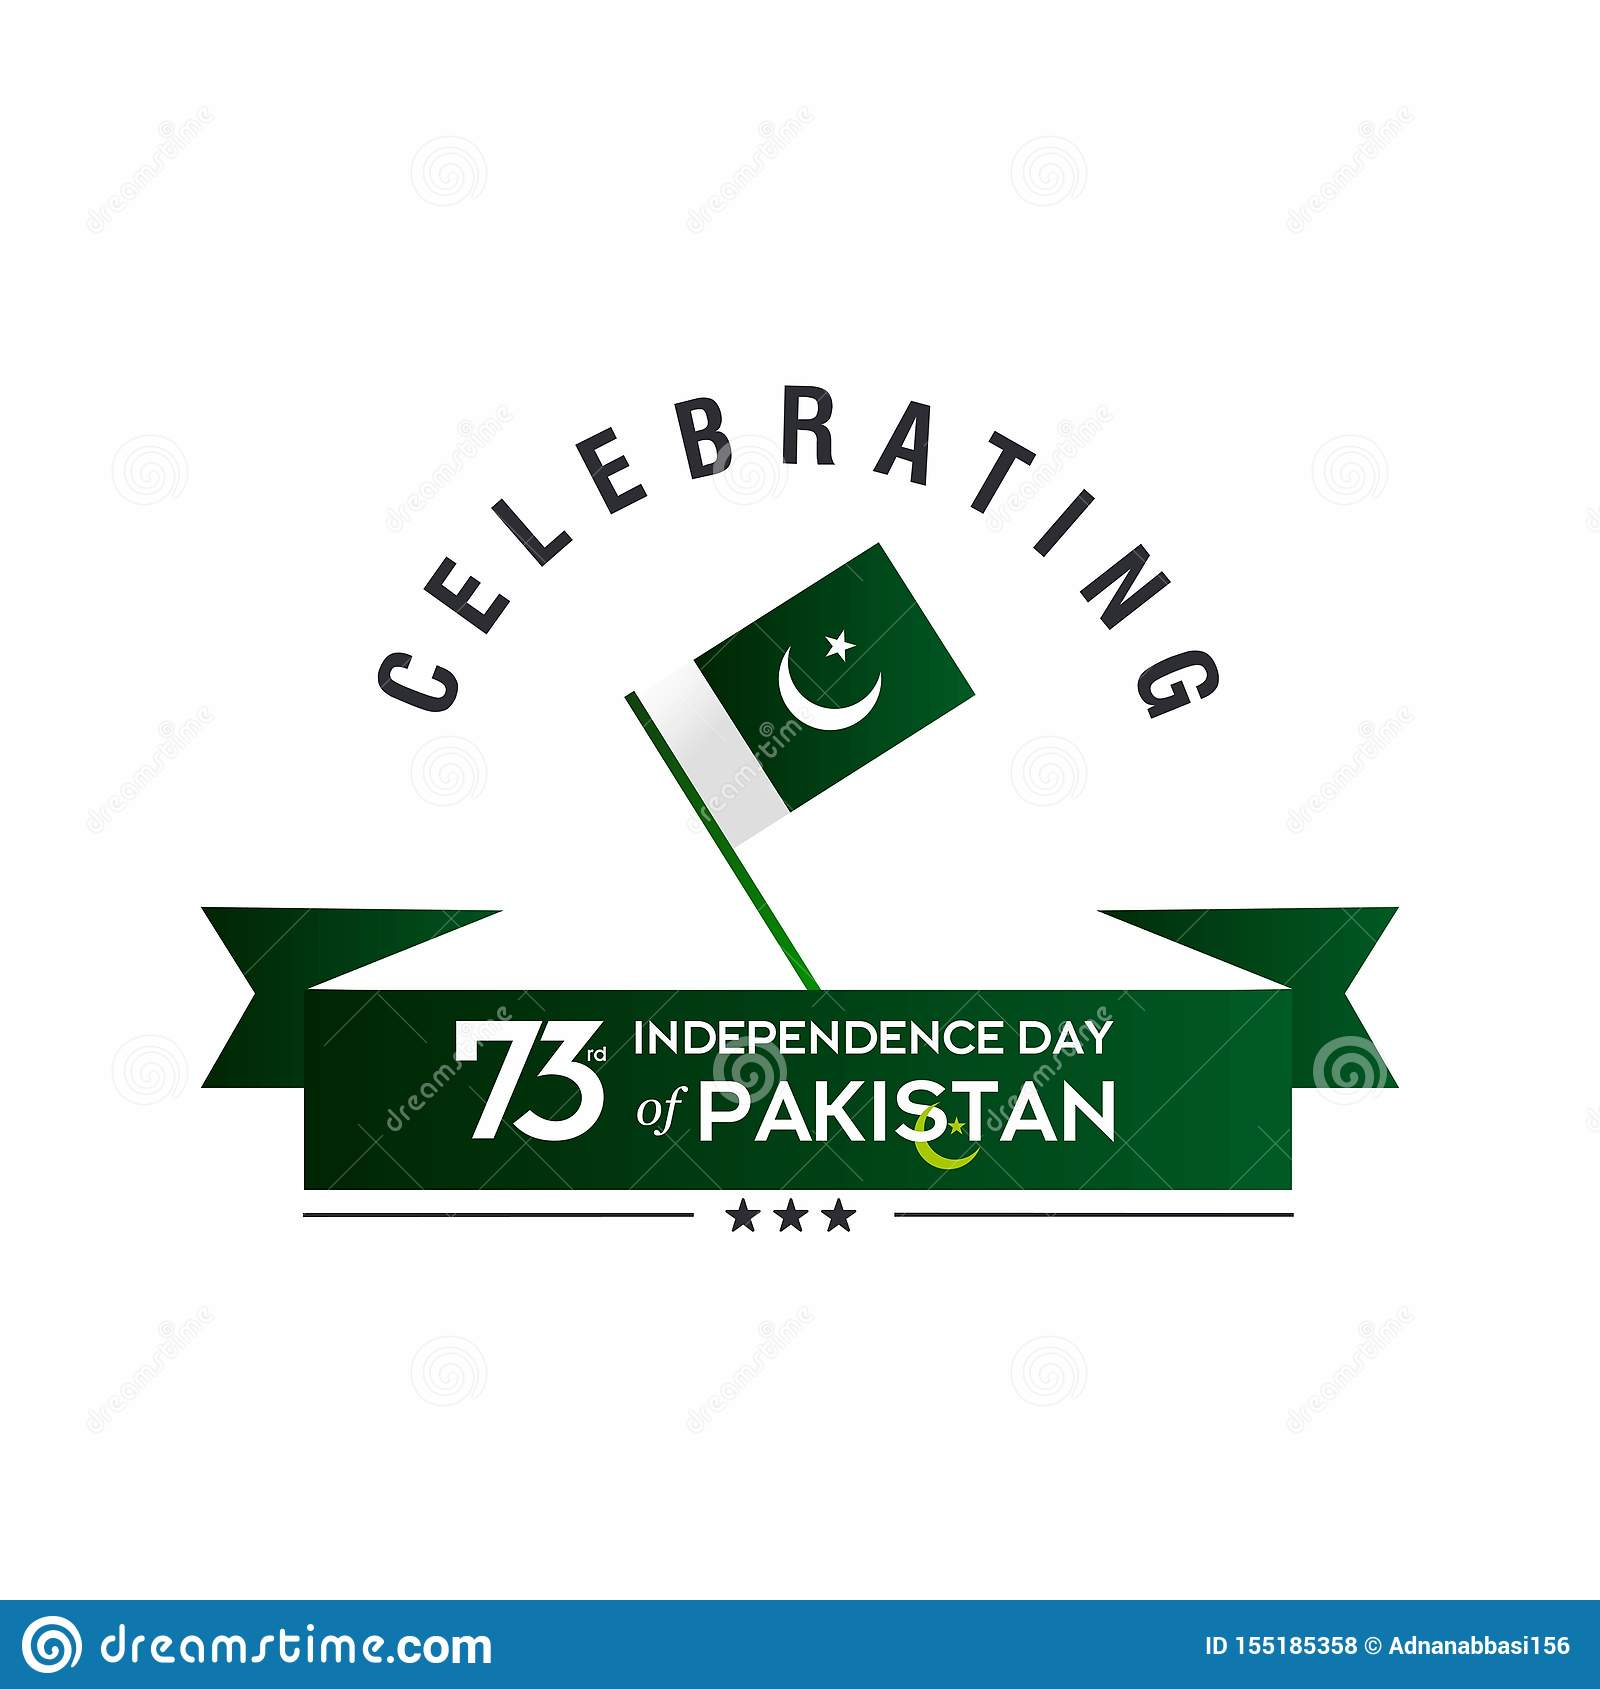 Pakistan Independence Day Typography Design. Creative Typography of 73rd Happy Independence Day of Pakistan Vector Template Design